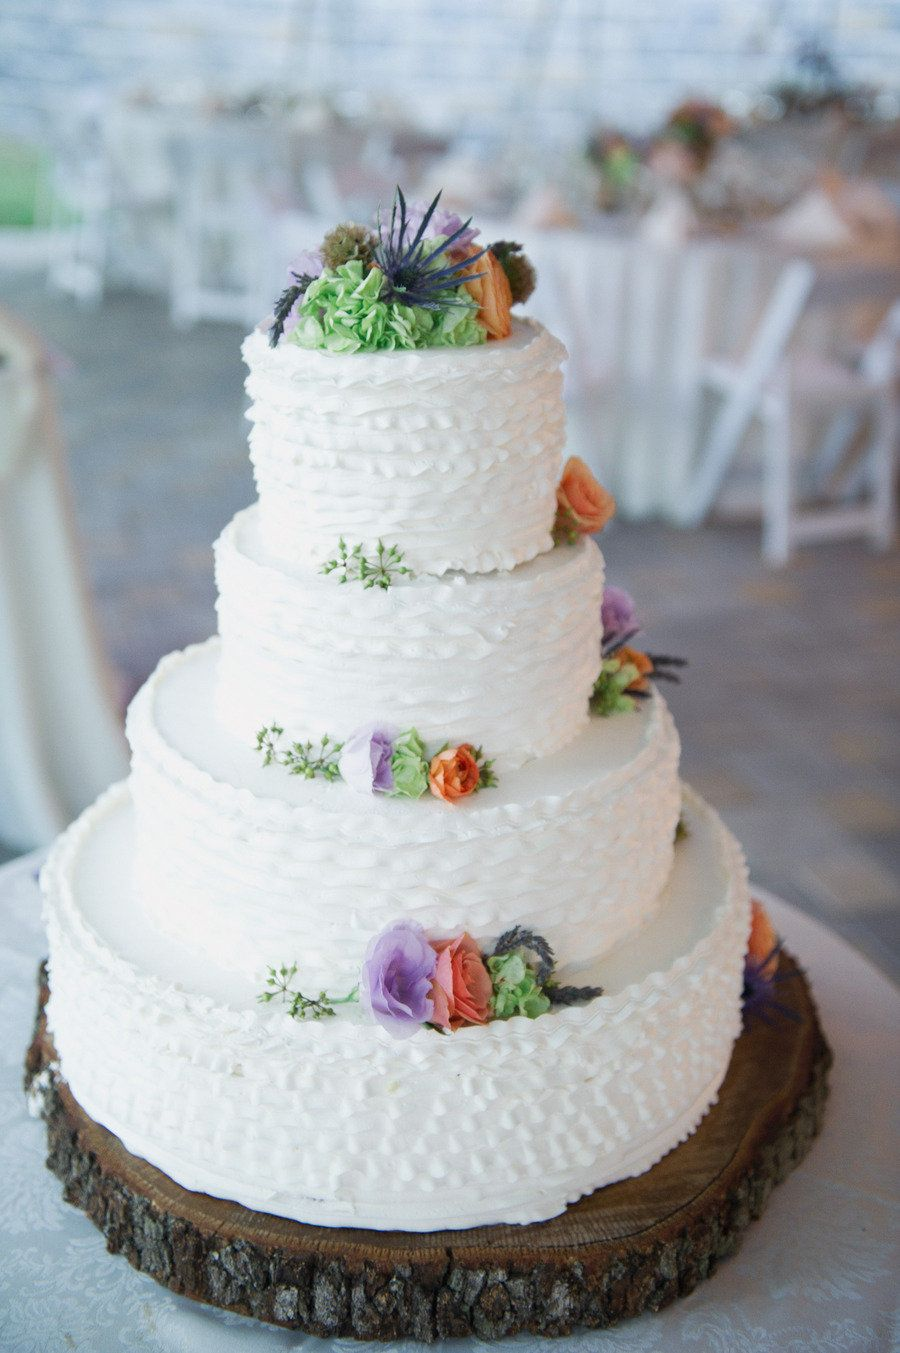 New jersey wedding by trent bailey photography floral designs